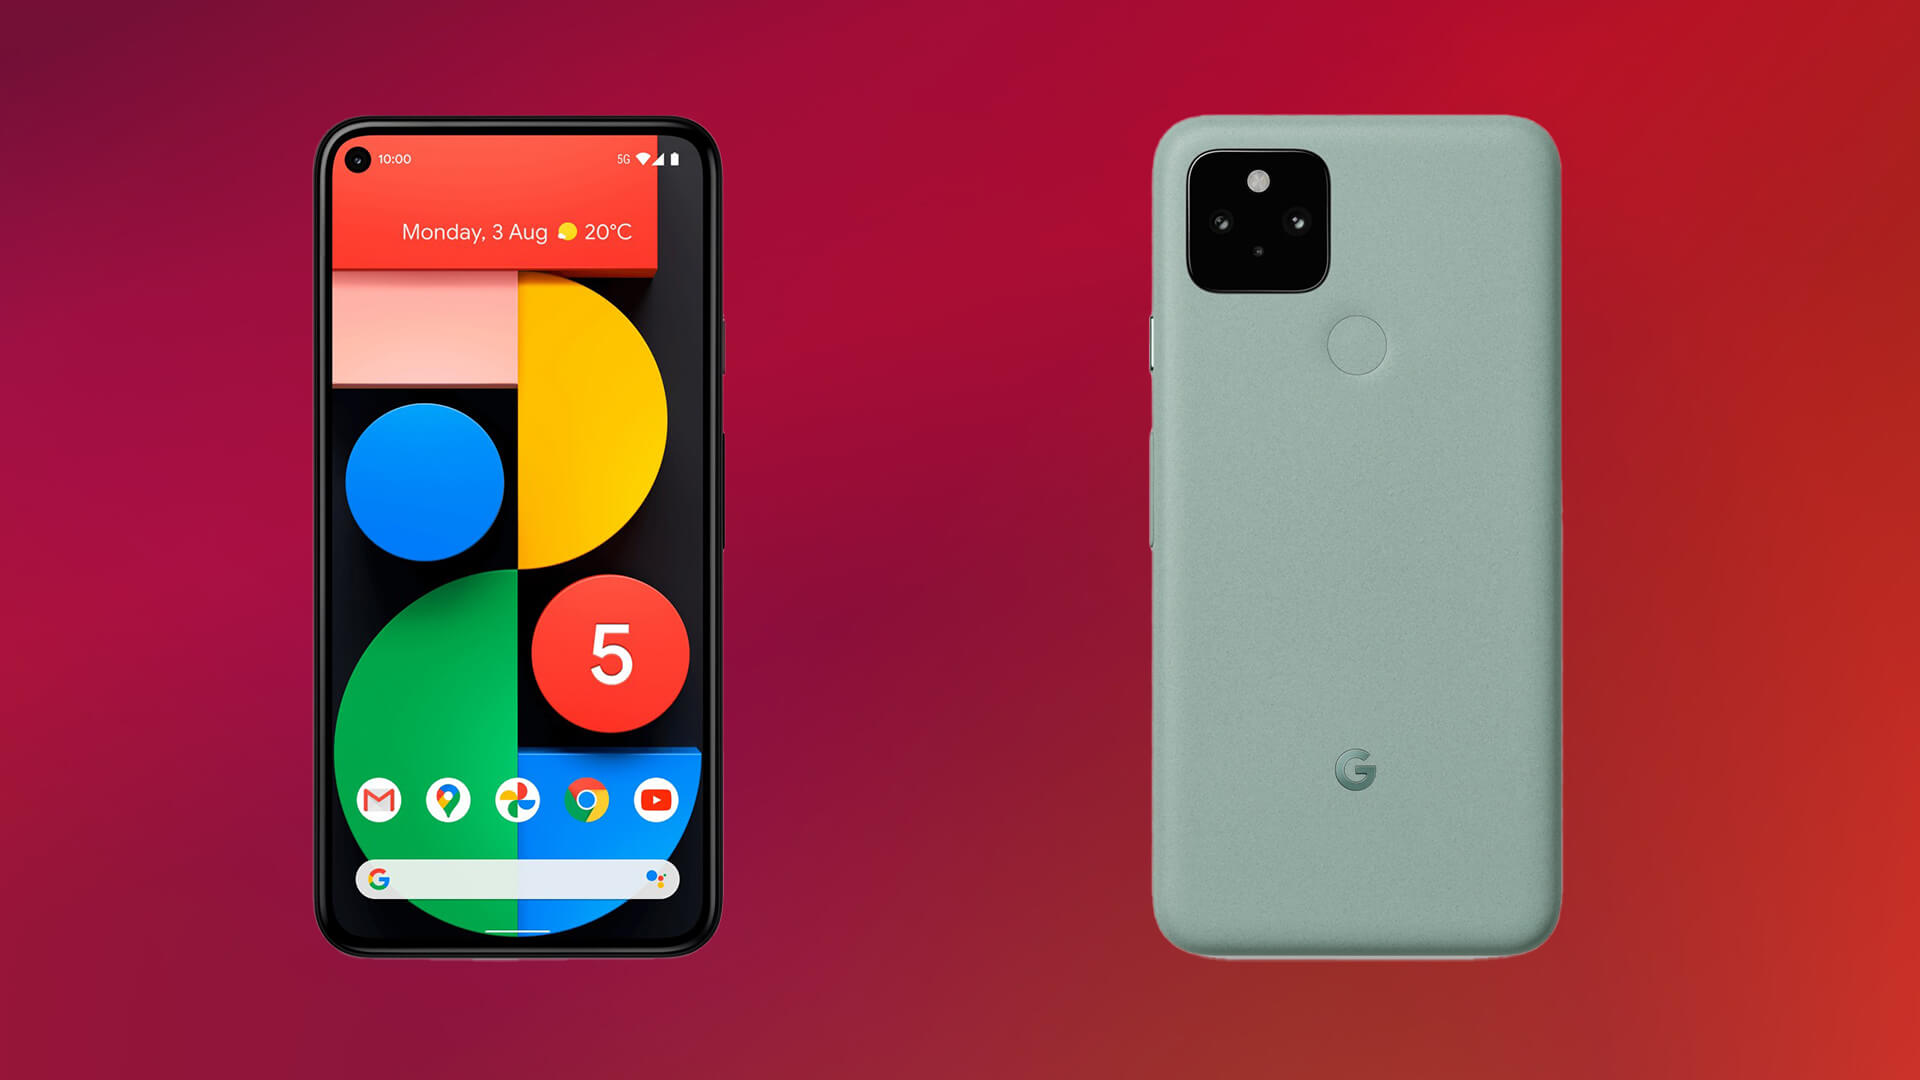 Google Pixel 5 Brings 90Hz OLED Screen, Snapdragon 765G, and 5G: Specs